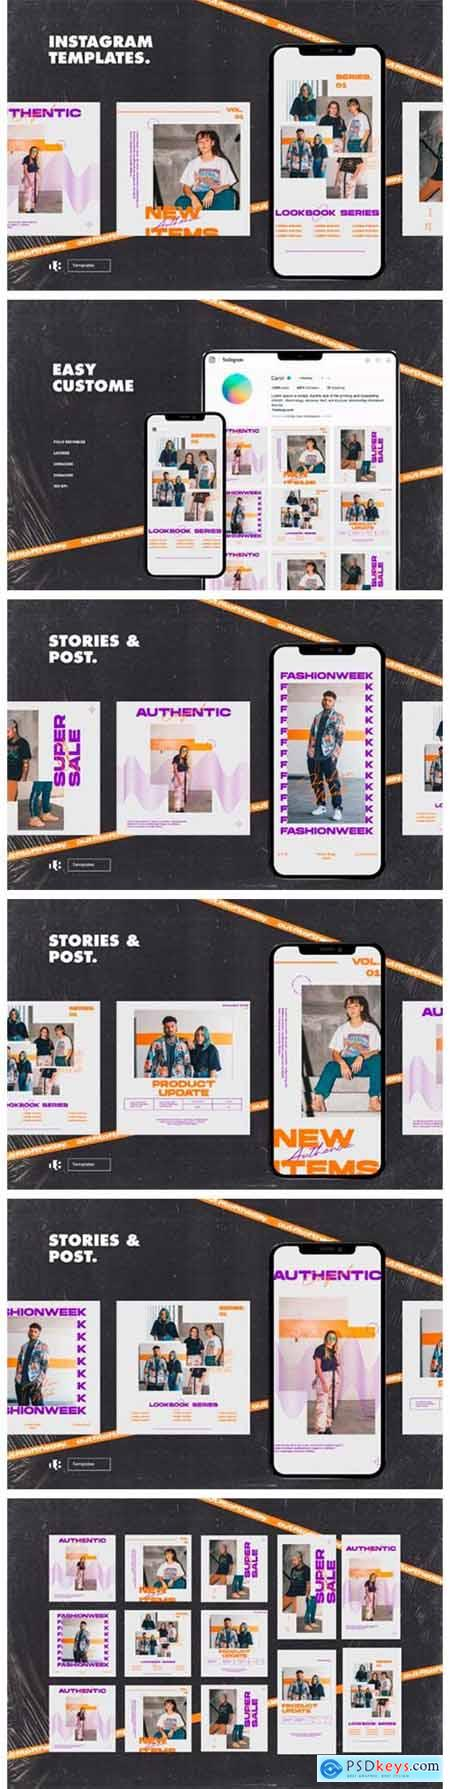 Instagram Story Template 1915907